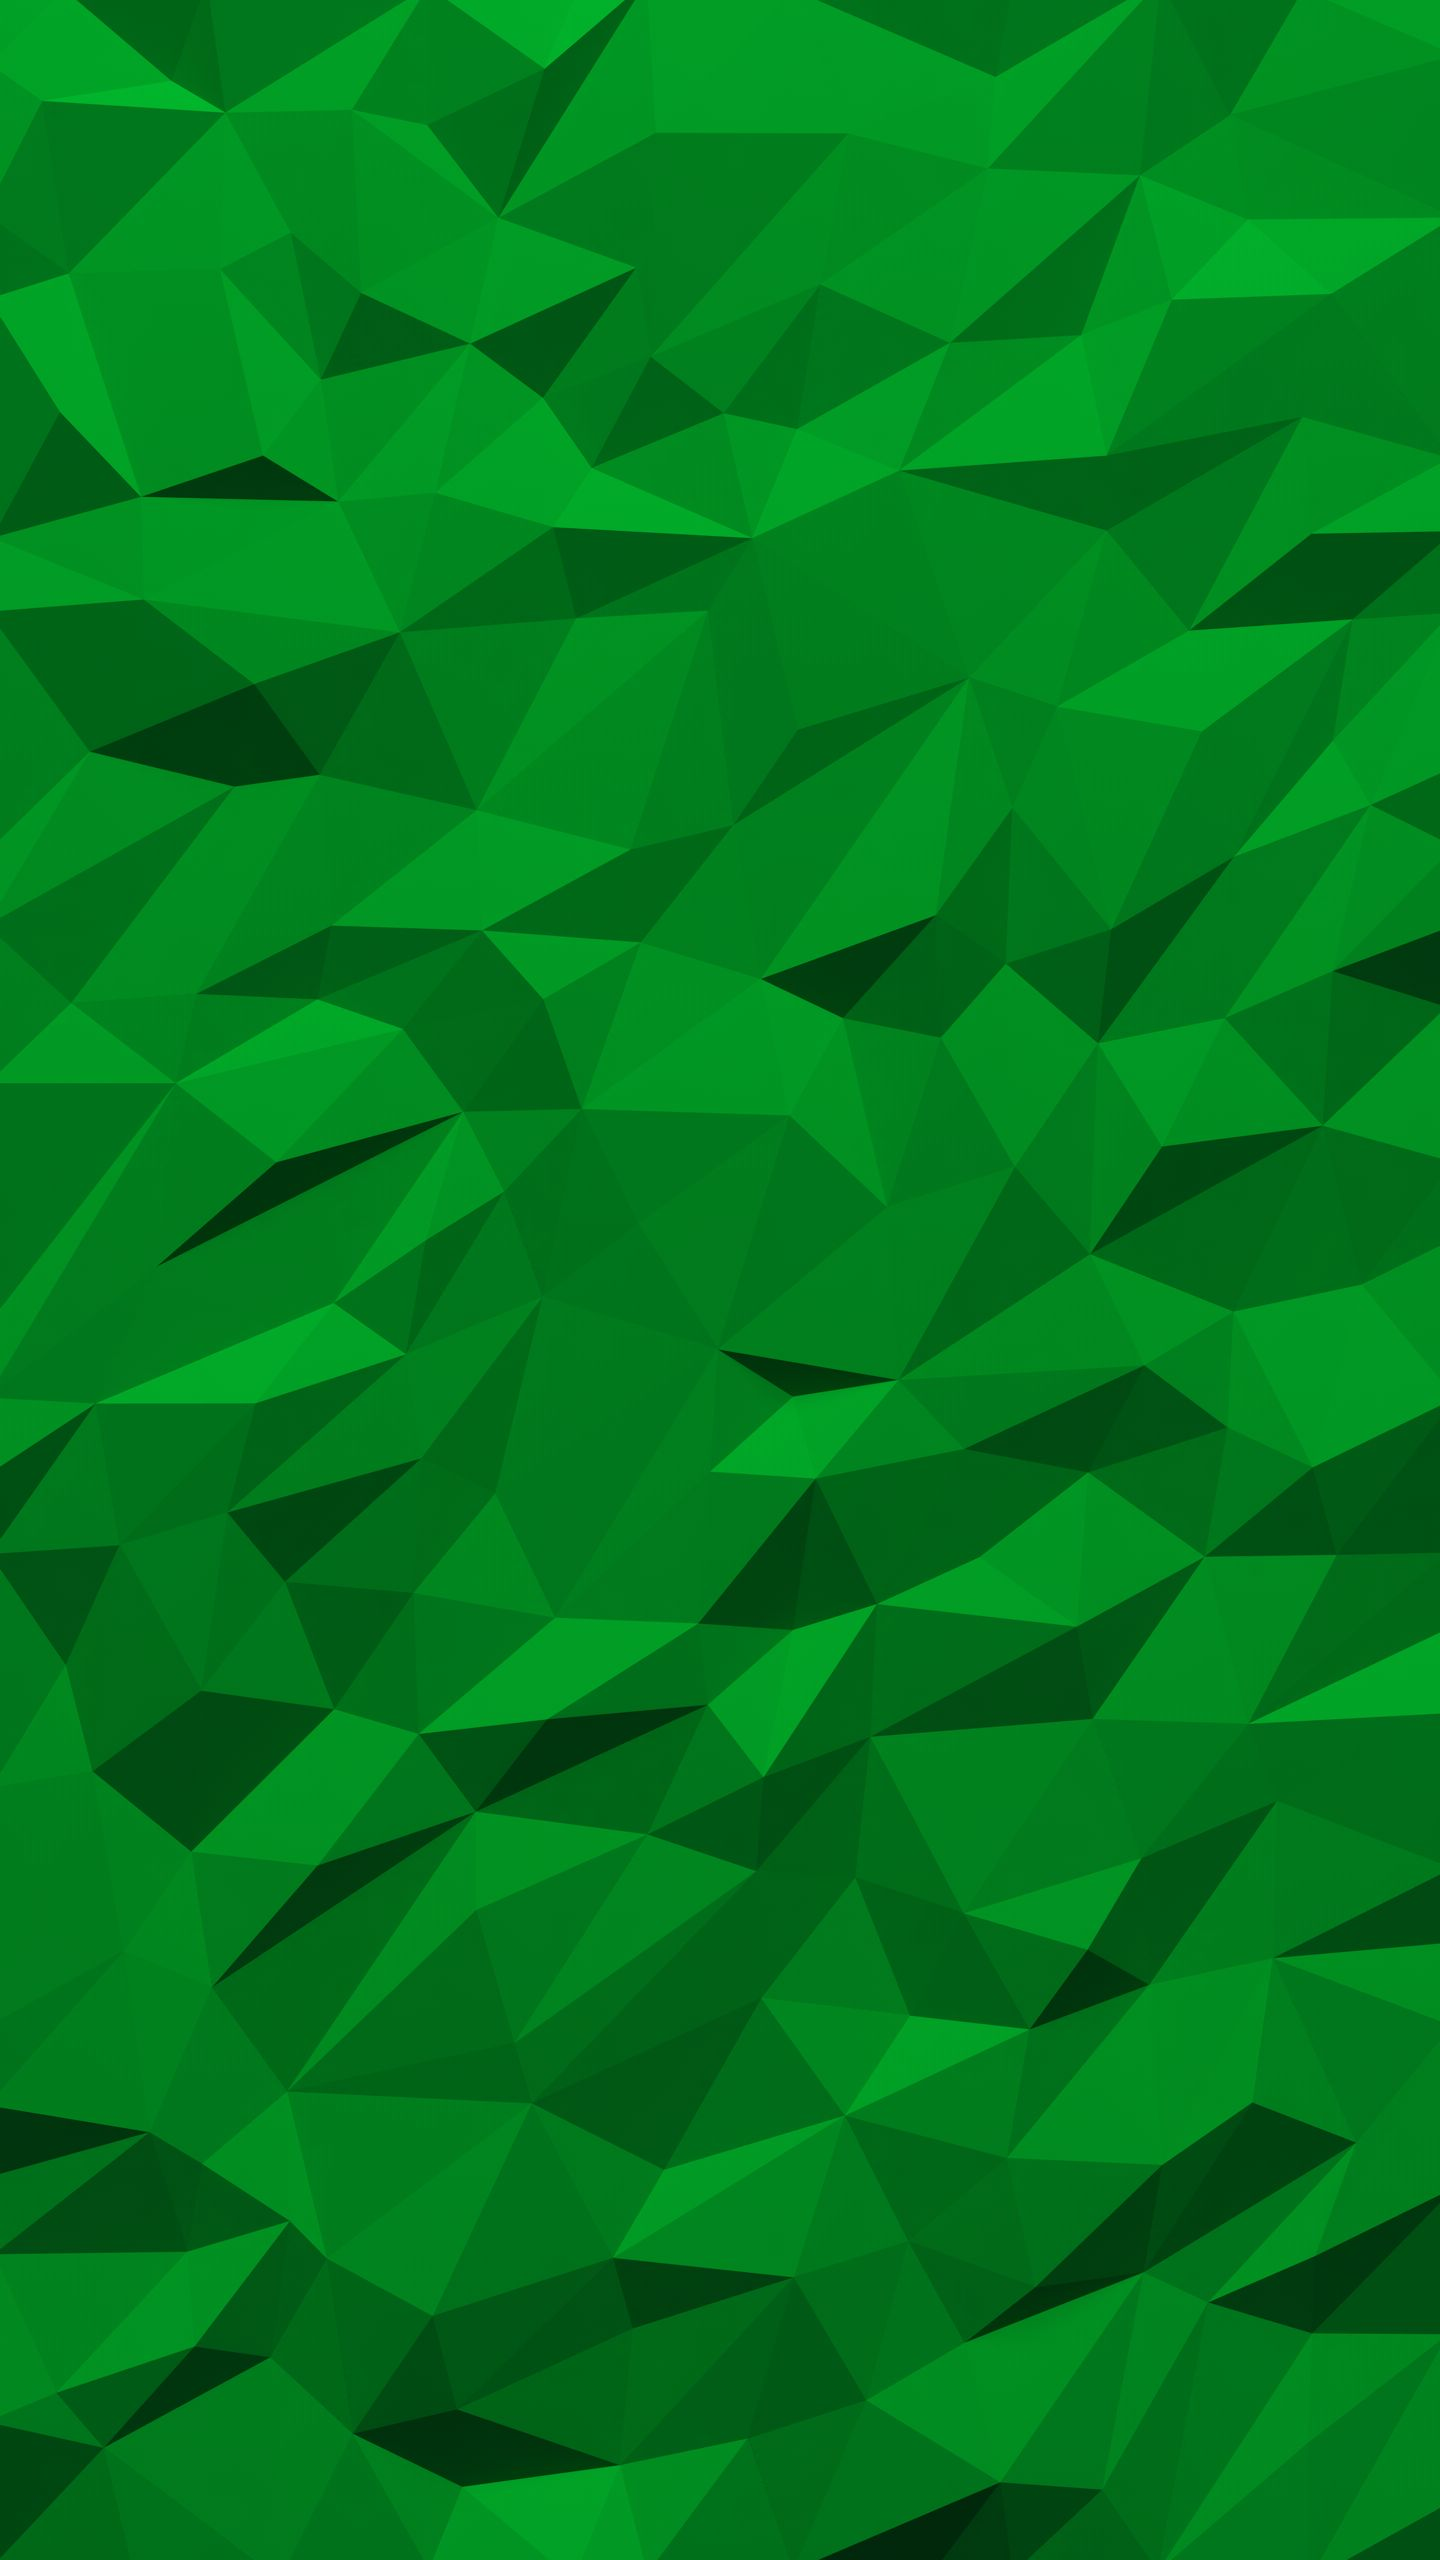 53483 download wallpaper Textures, Texture, Triangles, Fragments, Volume, Shapes, Shape screensavers and pictures for free